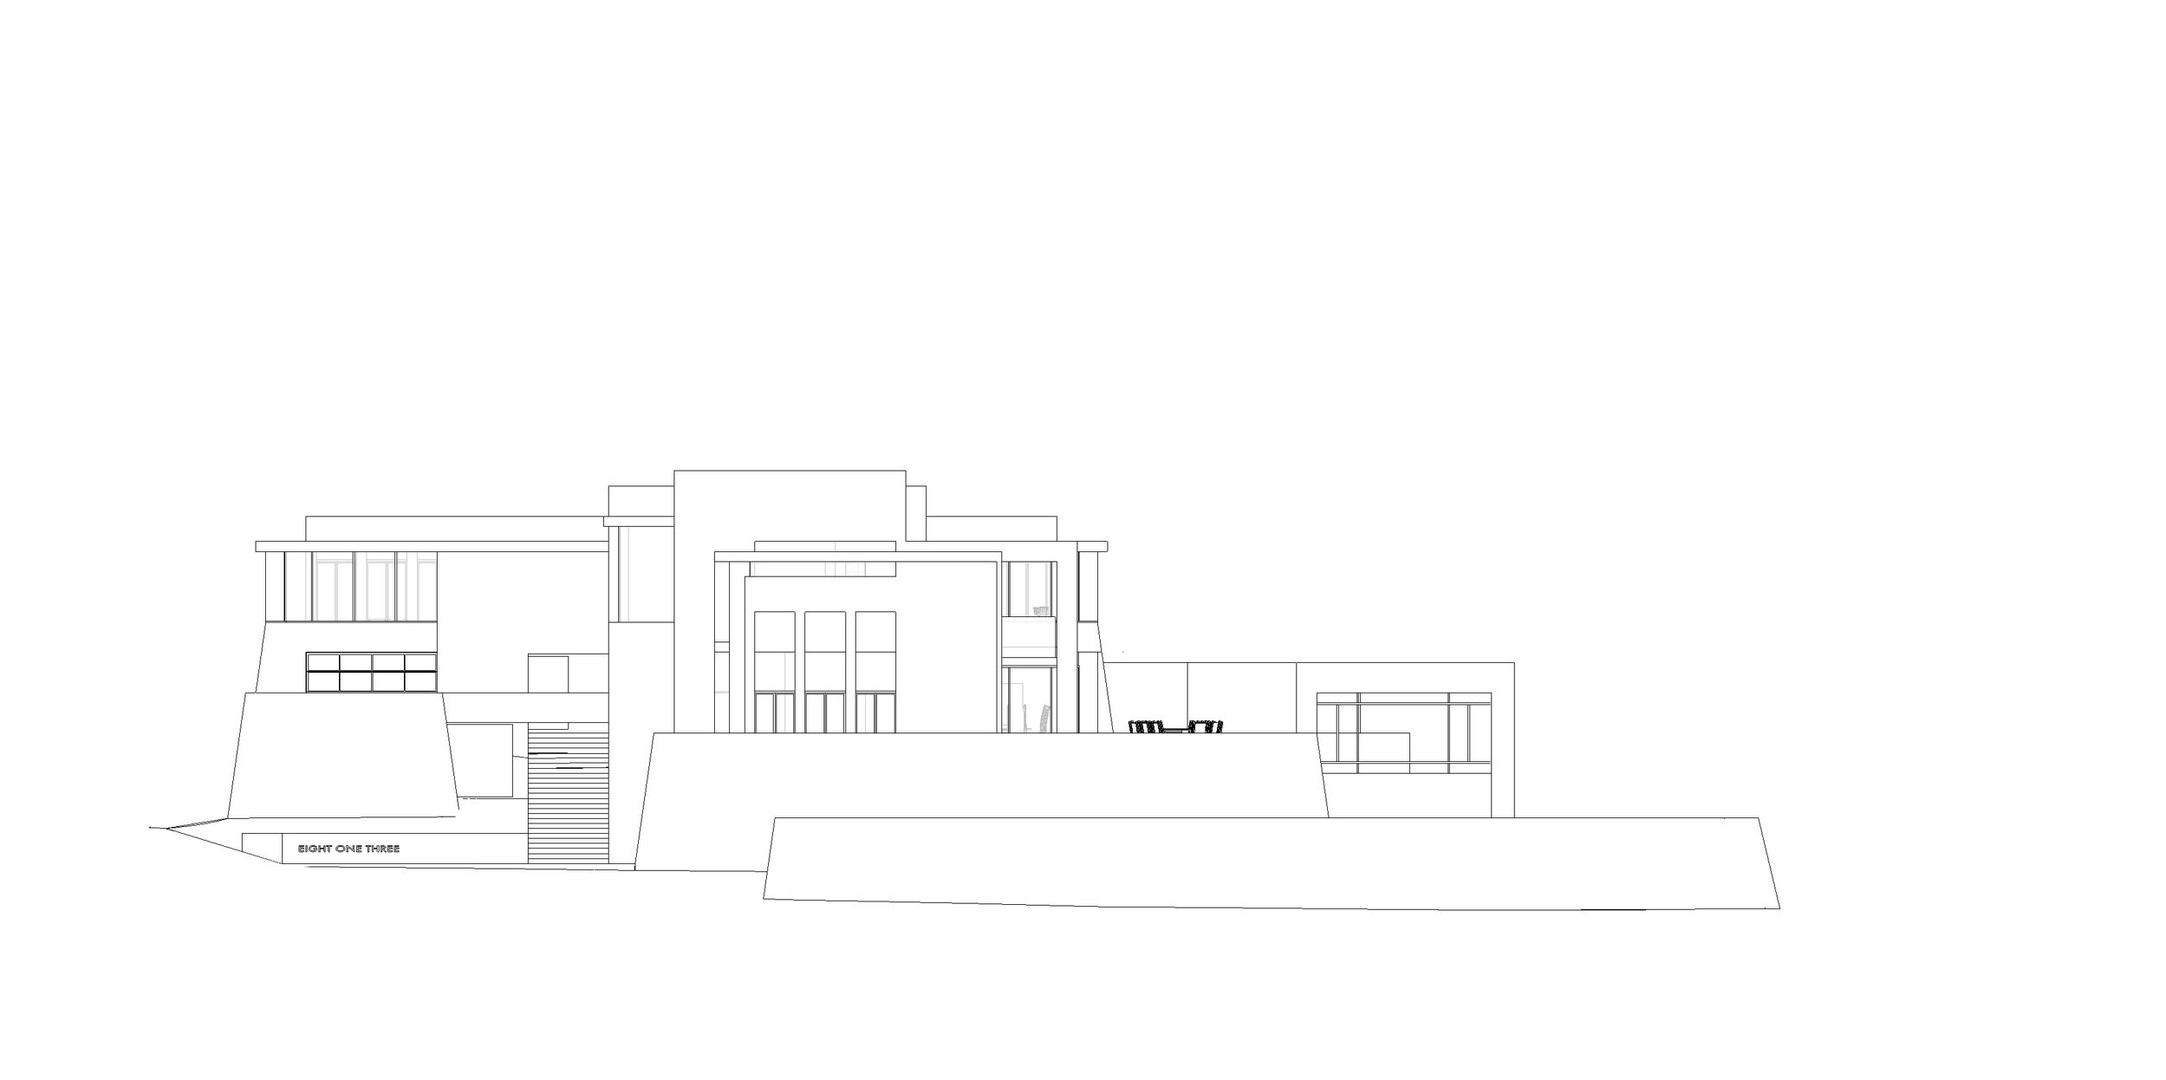 LA CANADA FLINTRIDGE RESIDENCE - SOUTH ELEVATION